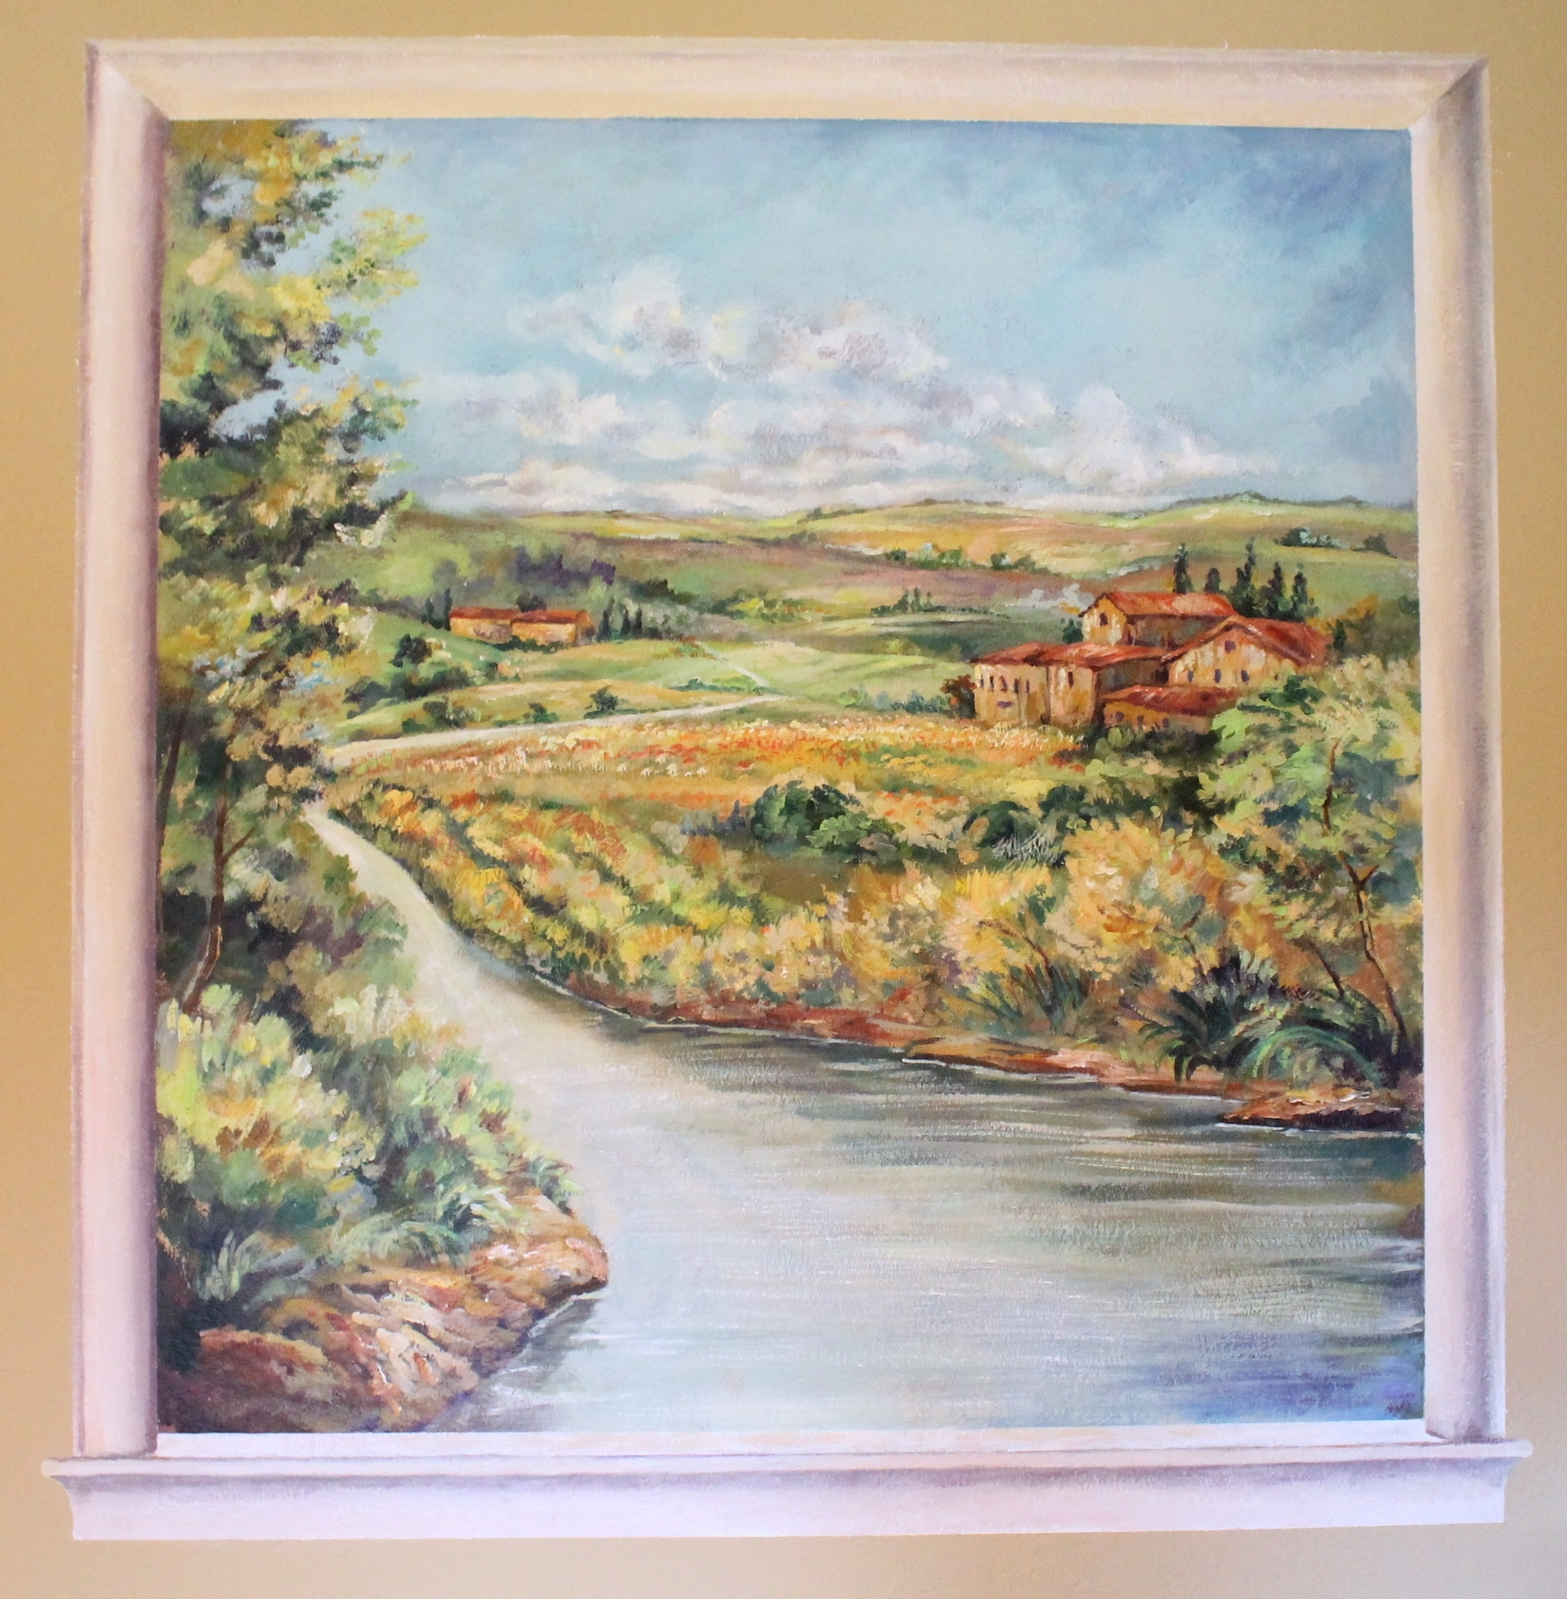 Tuscan Landscape, Commission 2015